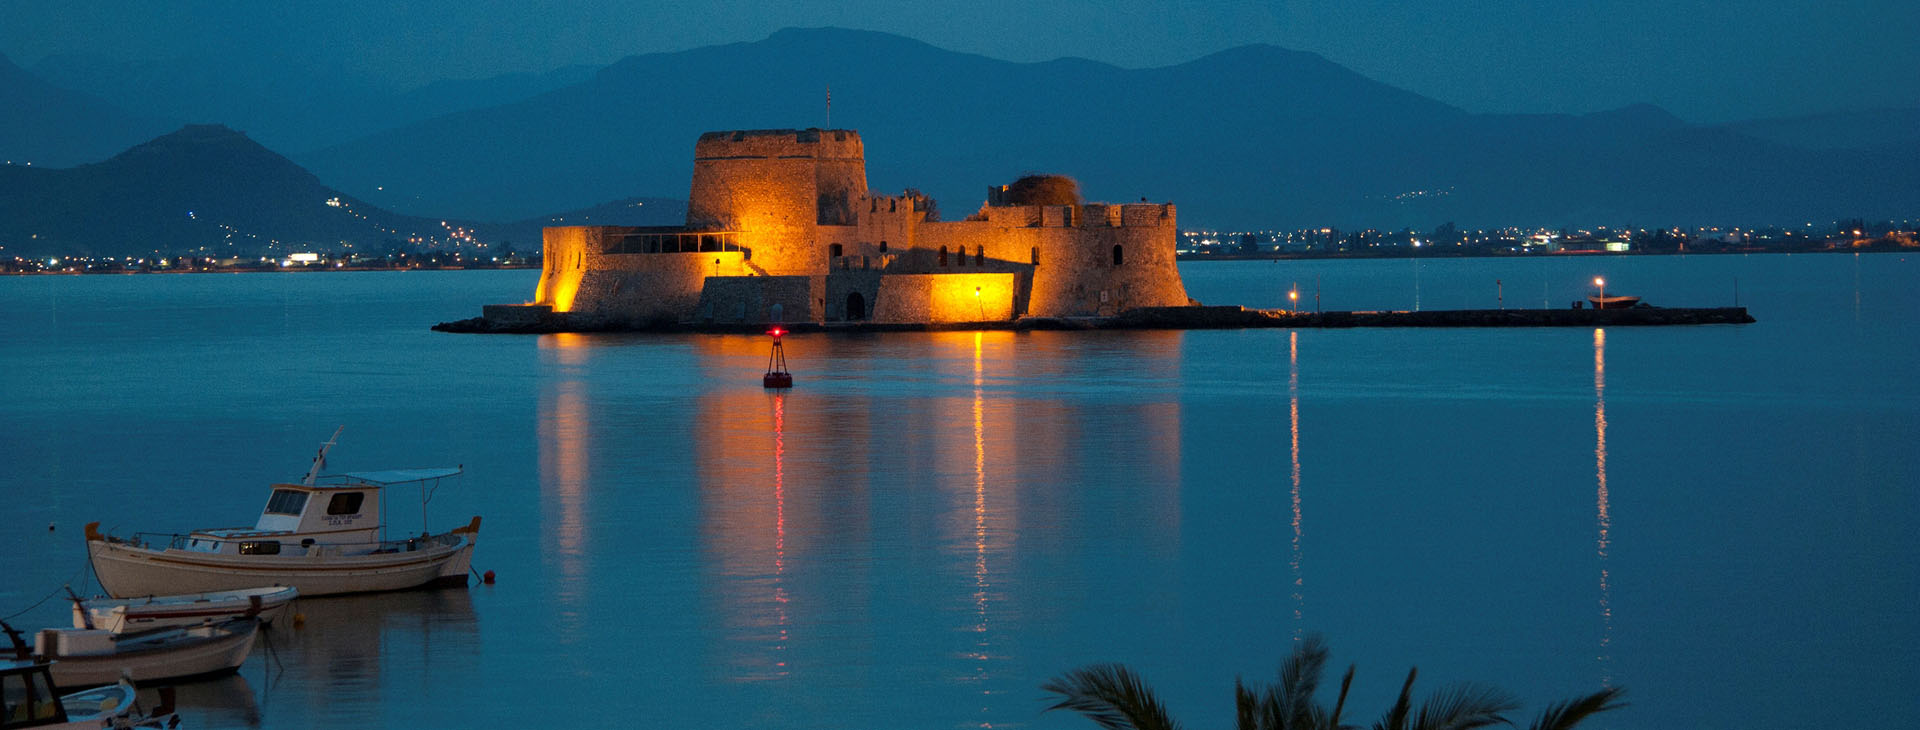 Bourtzi at Nafplion port by night, Argolida